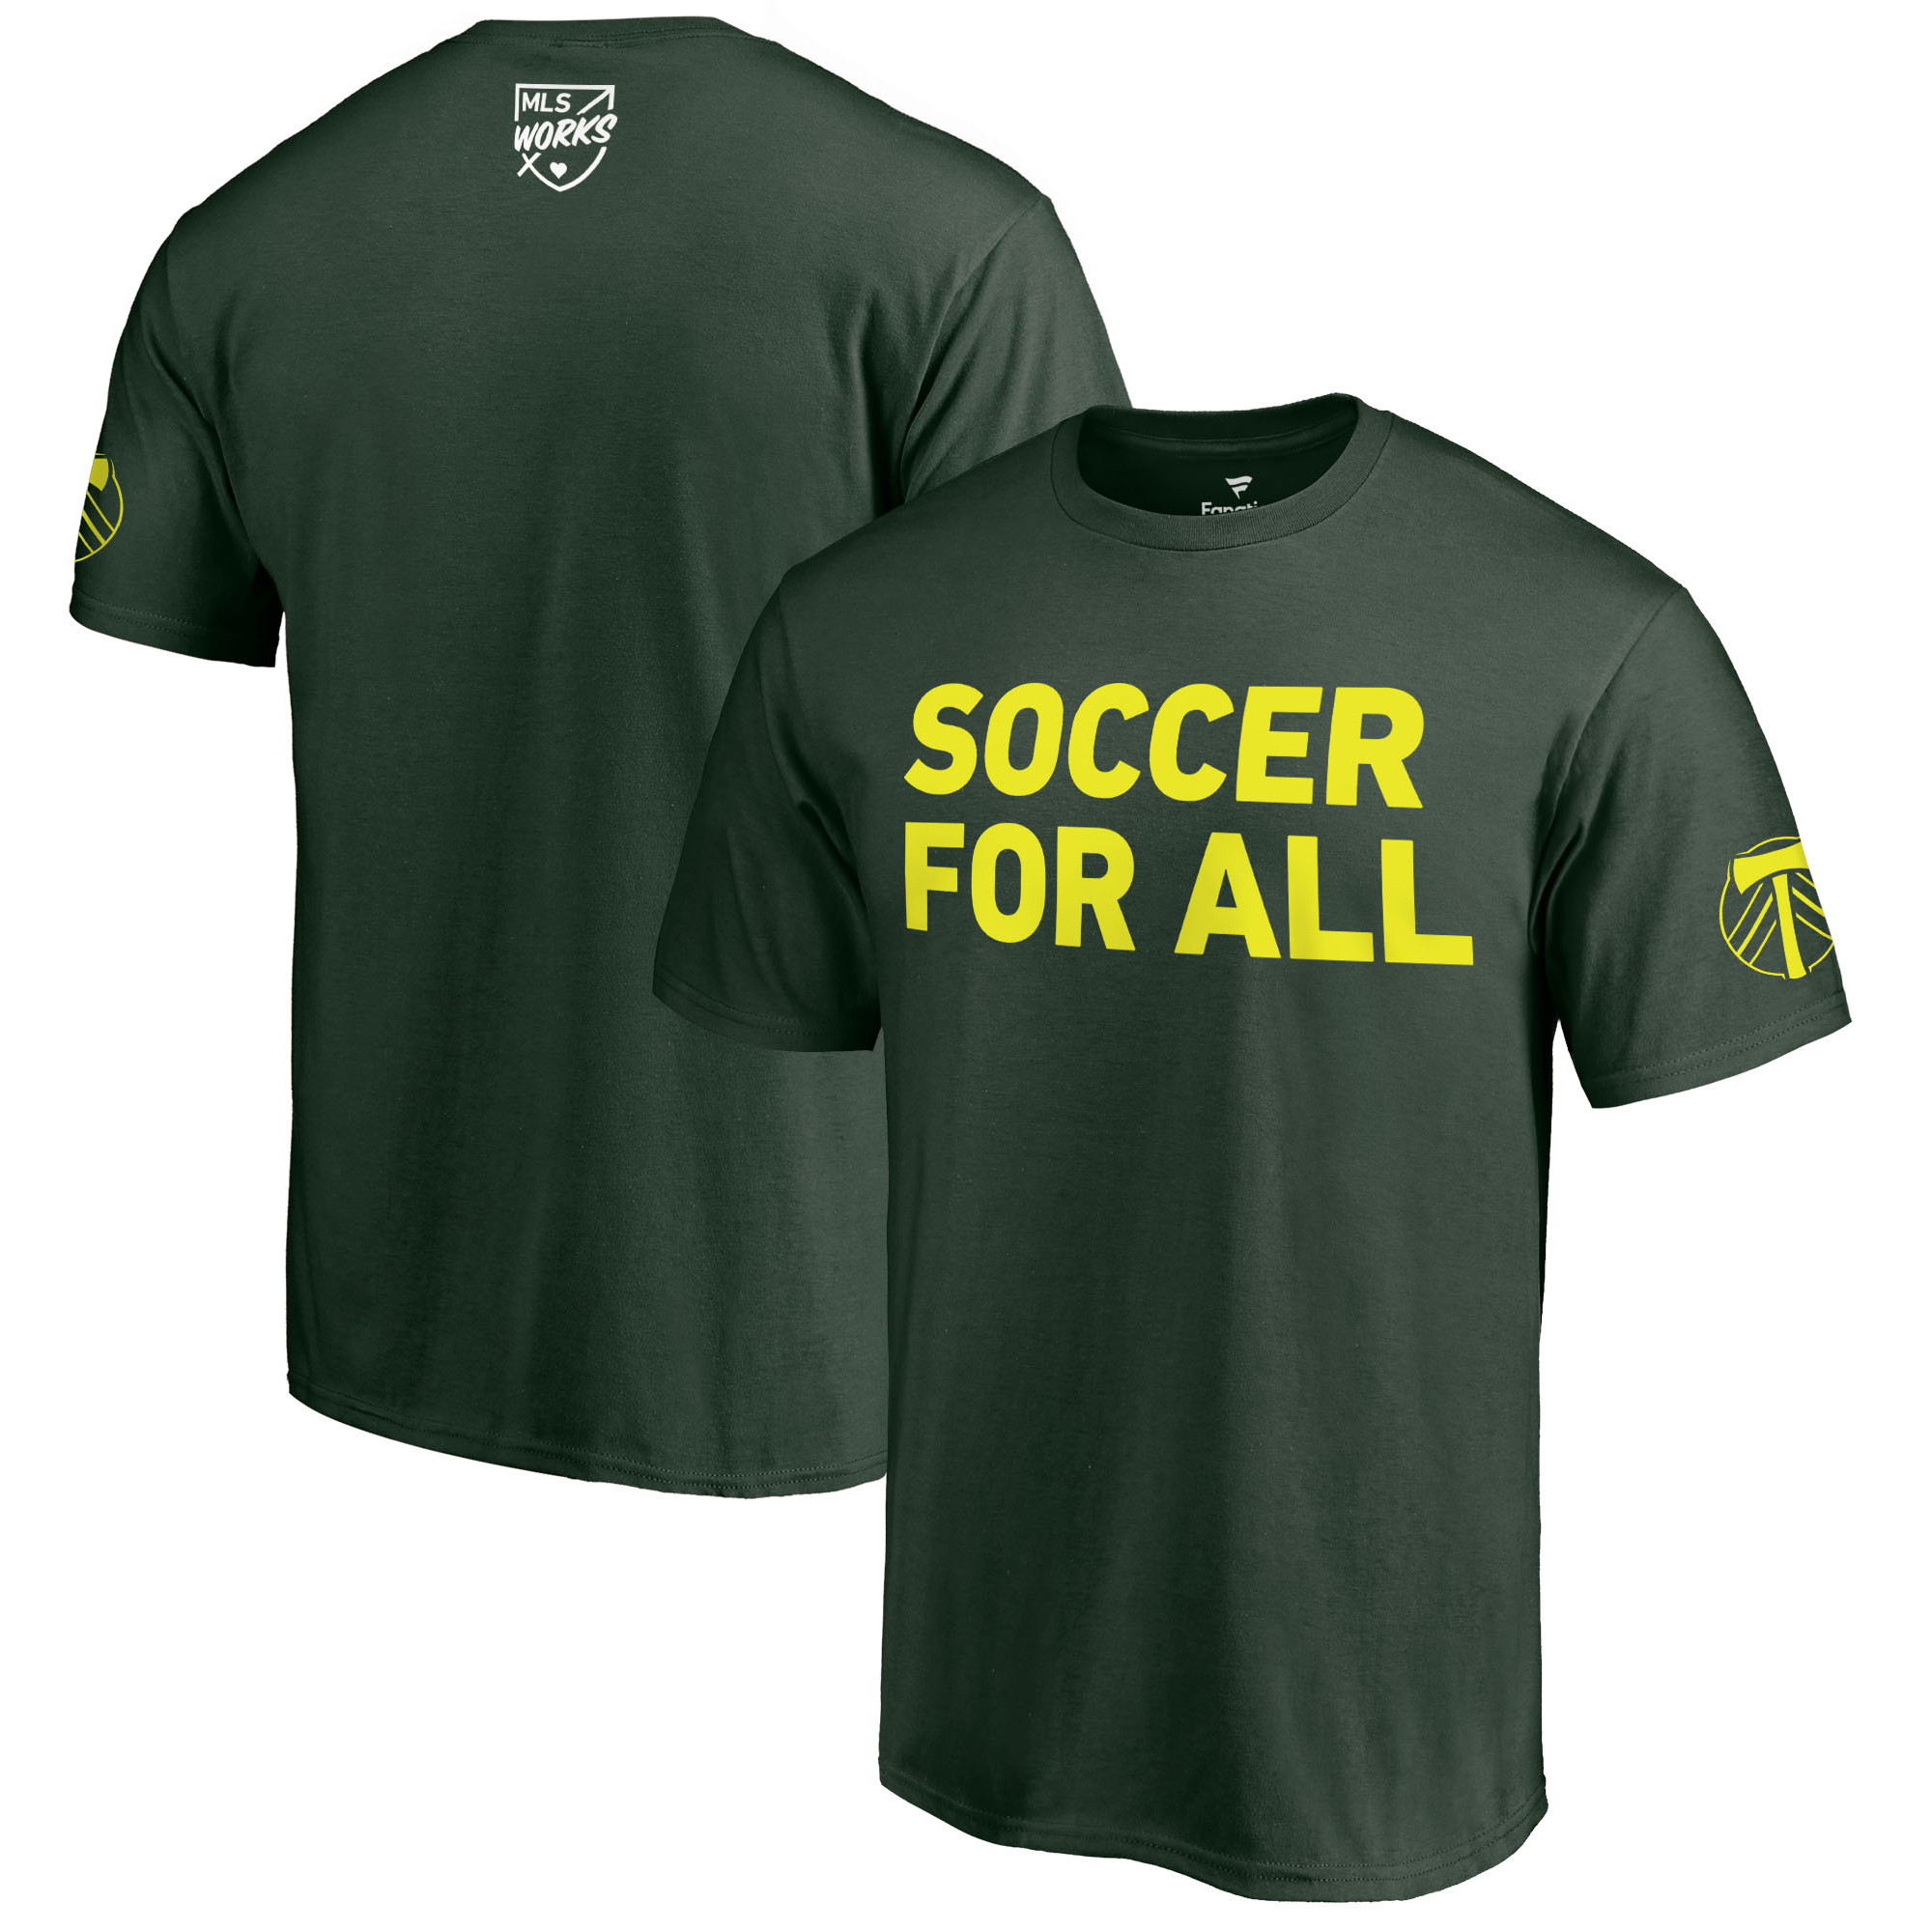 Portland Timbers Fanatics Branded 2018 Soccer For All T-Shirt - Green